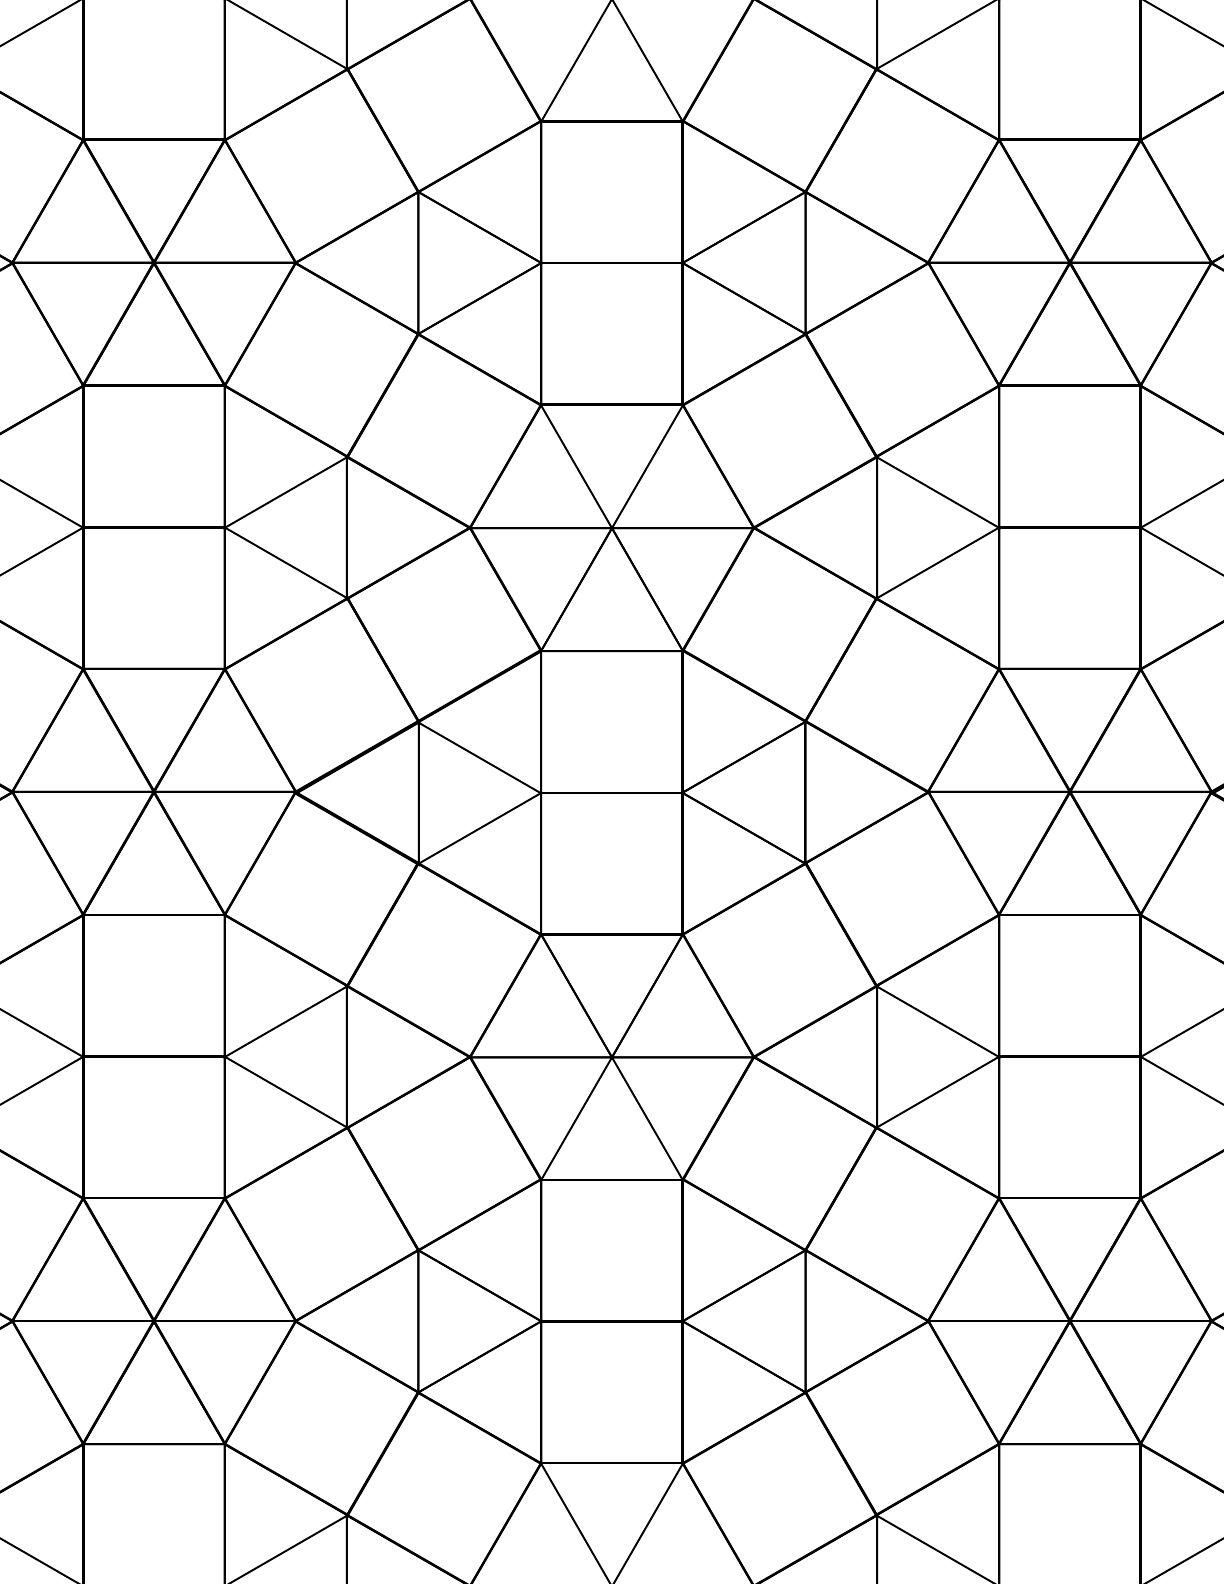 Tessellation Graph Paper (3.3.3.3.3.3,3.3.4.3.4) Free Download